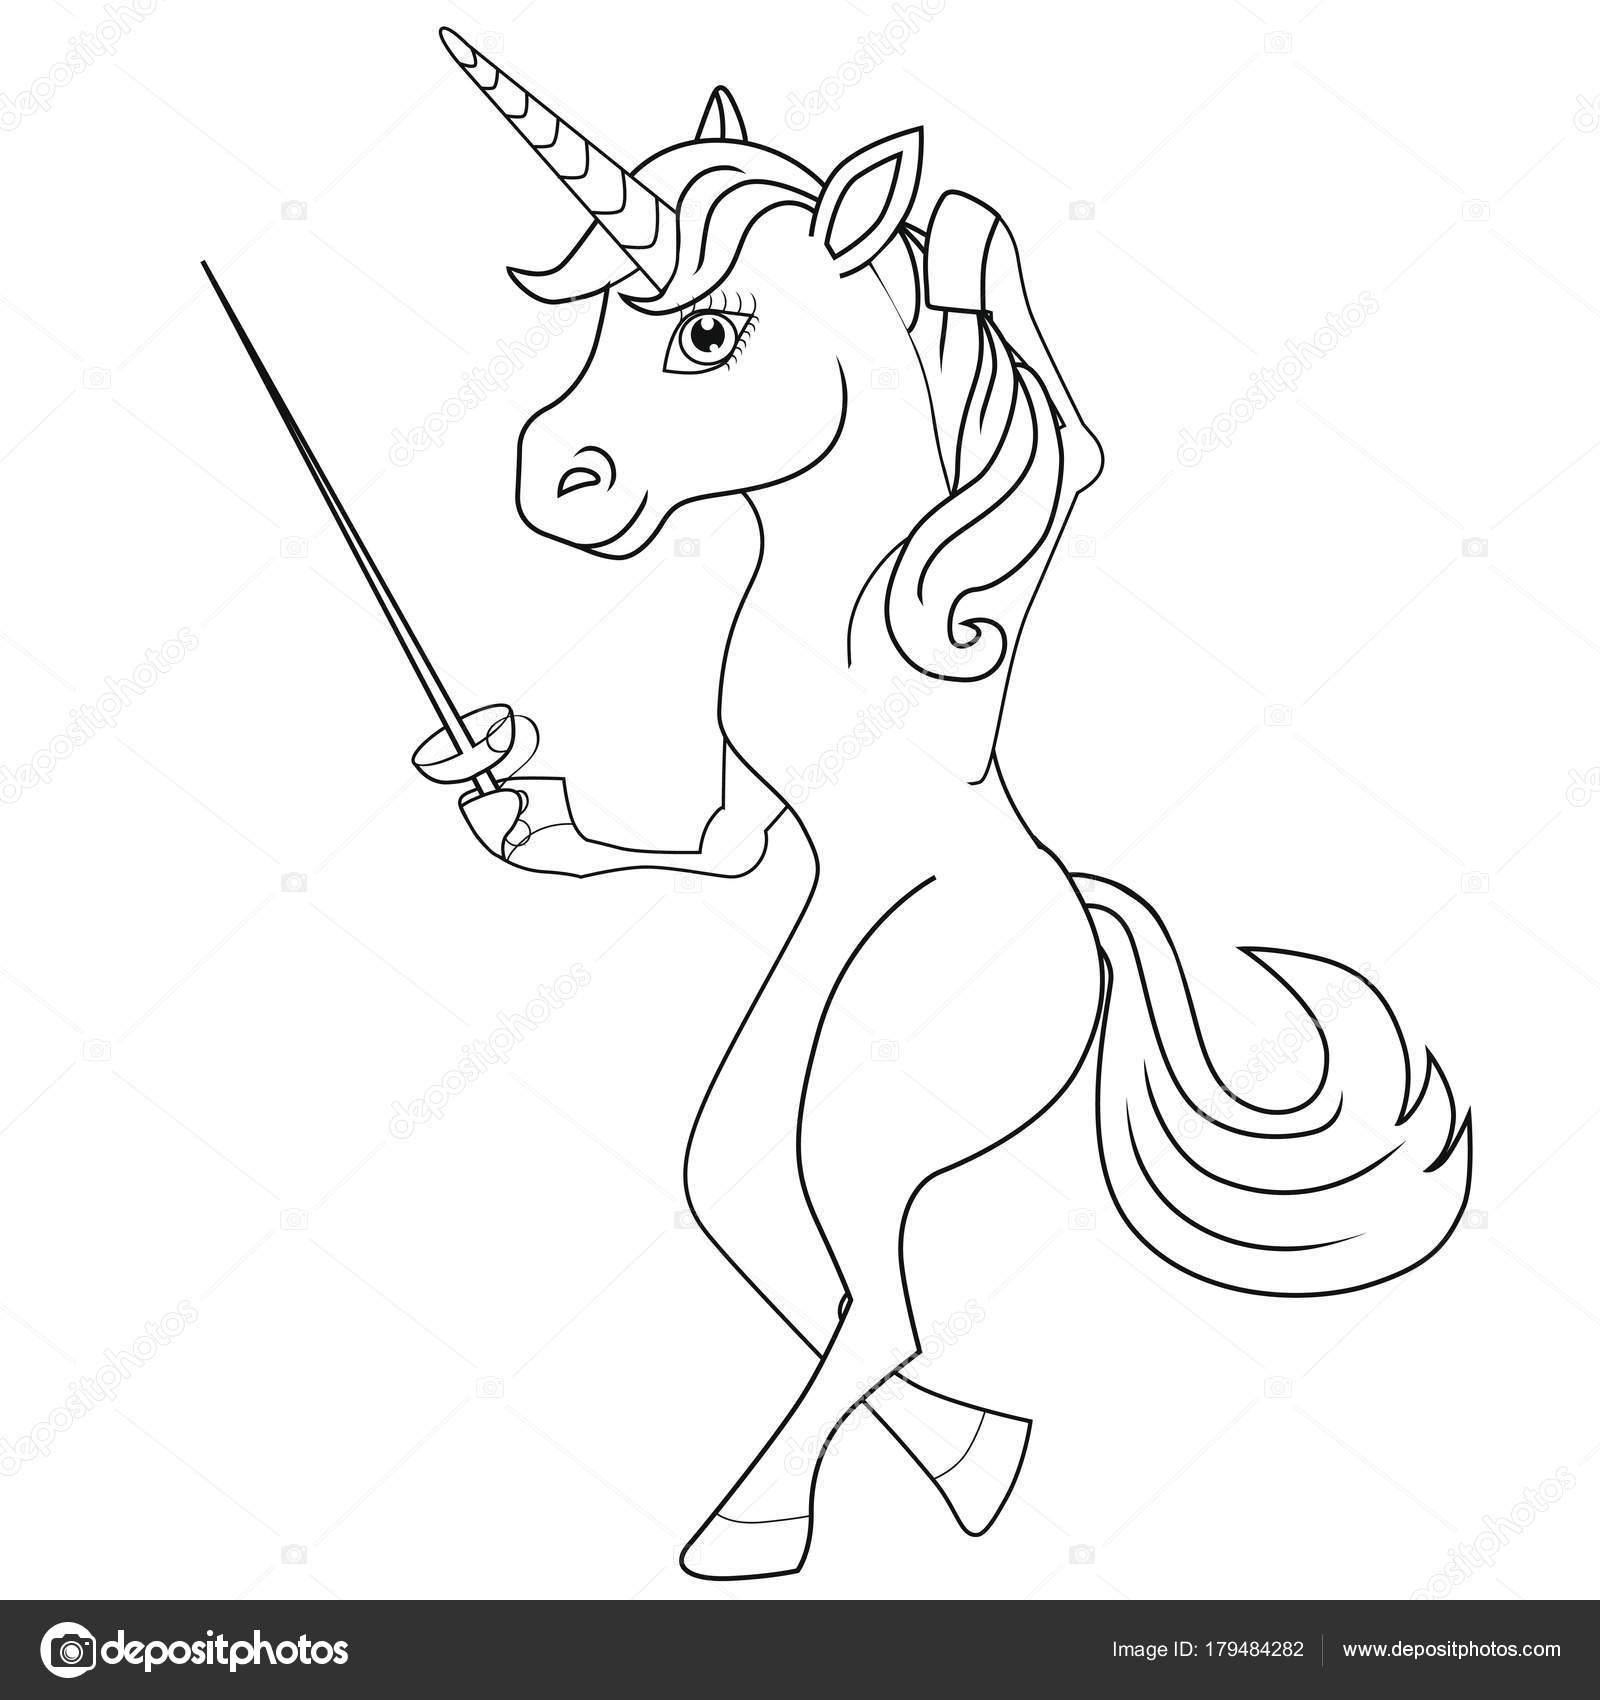 Coloring Book Unicorn Fencer Cartoon Style Isolated Image White